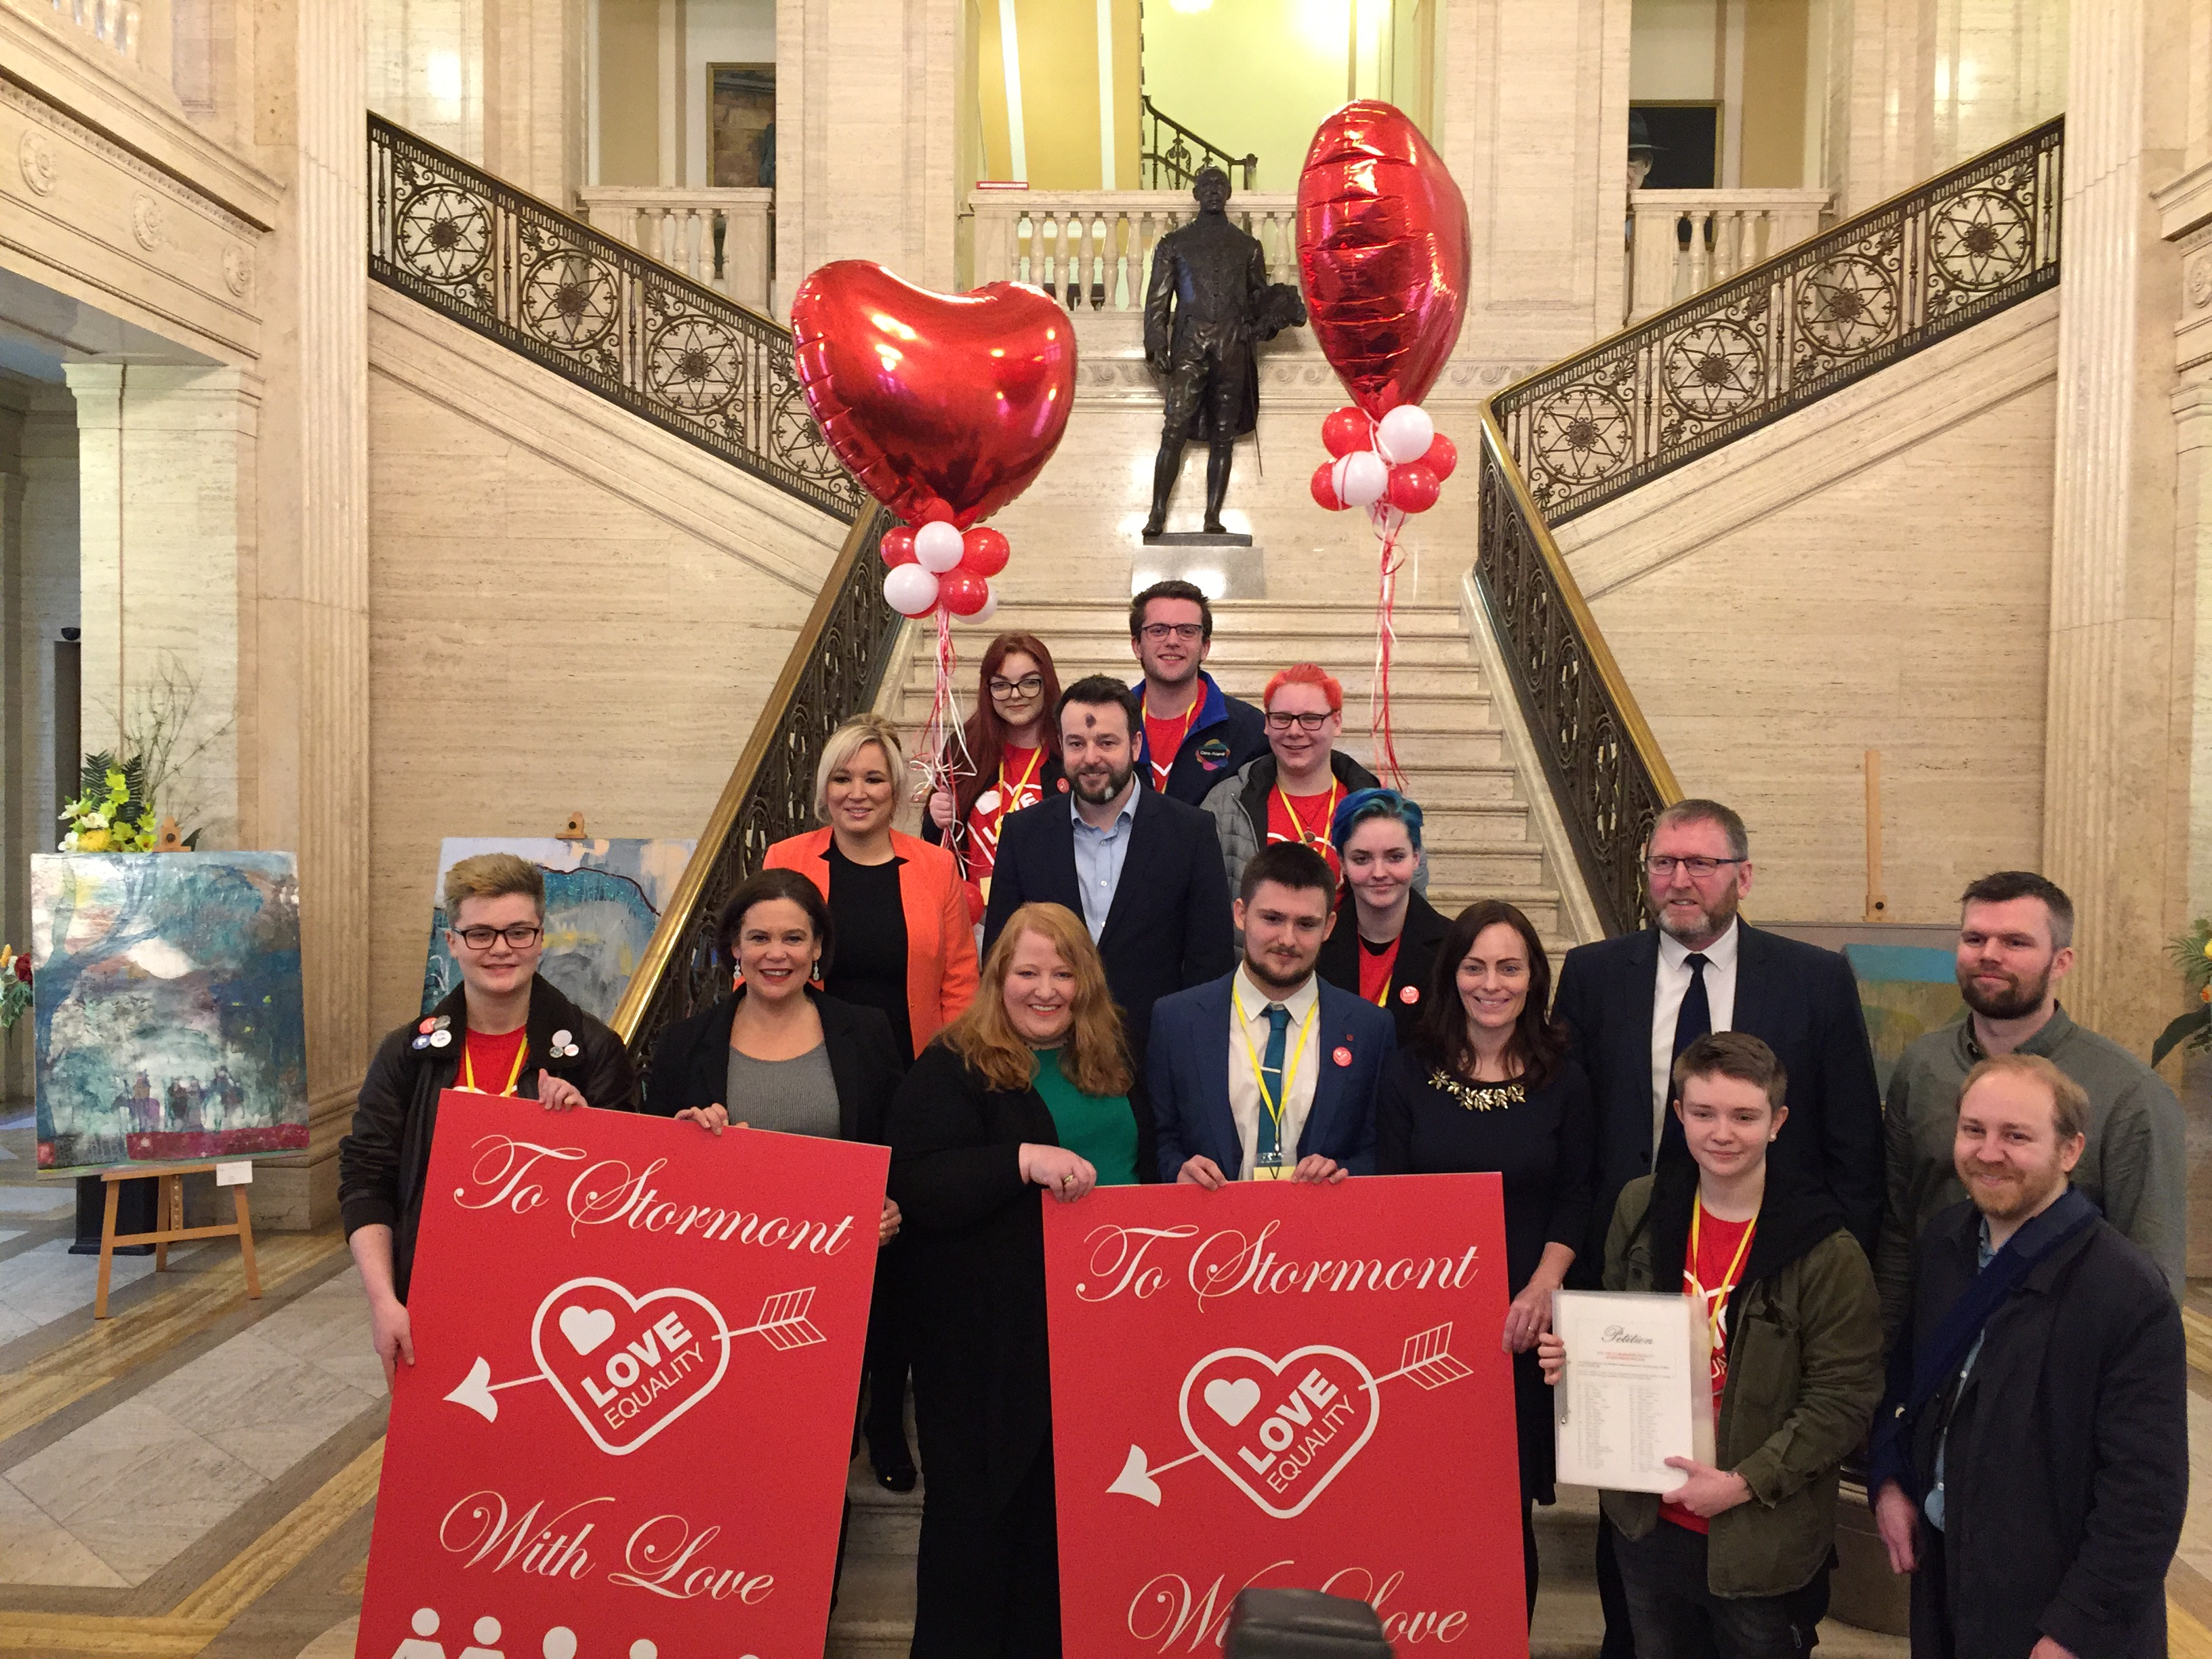 Same-sex marriage campaigners delivered Valentine's Day cards to Stormont as talks to restore powersharing rumble on (David Young/PA)